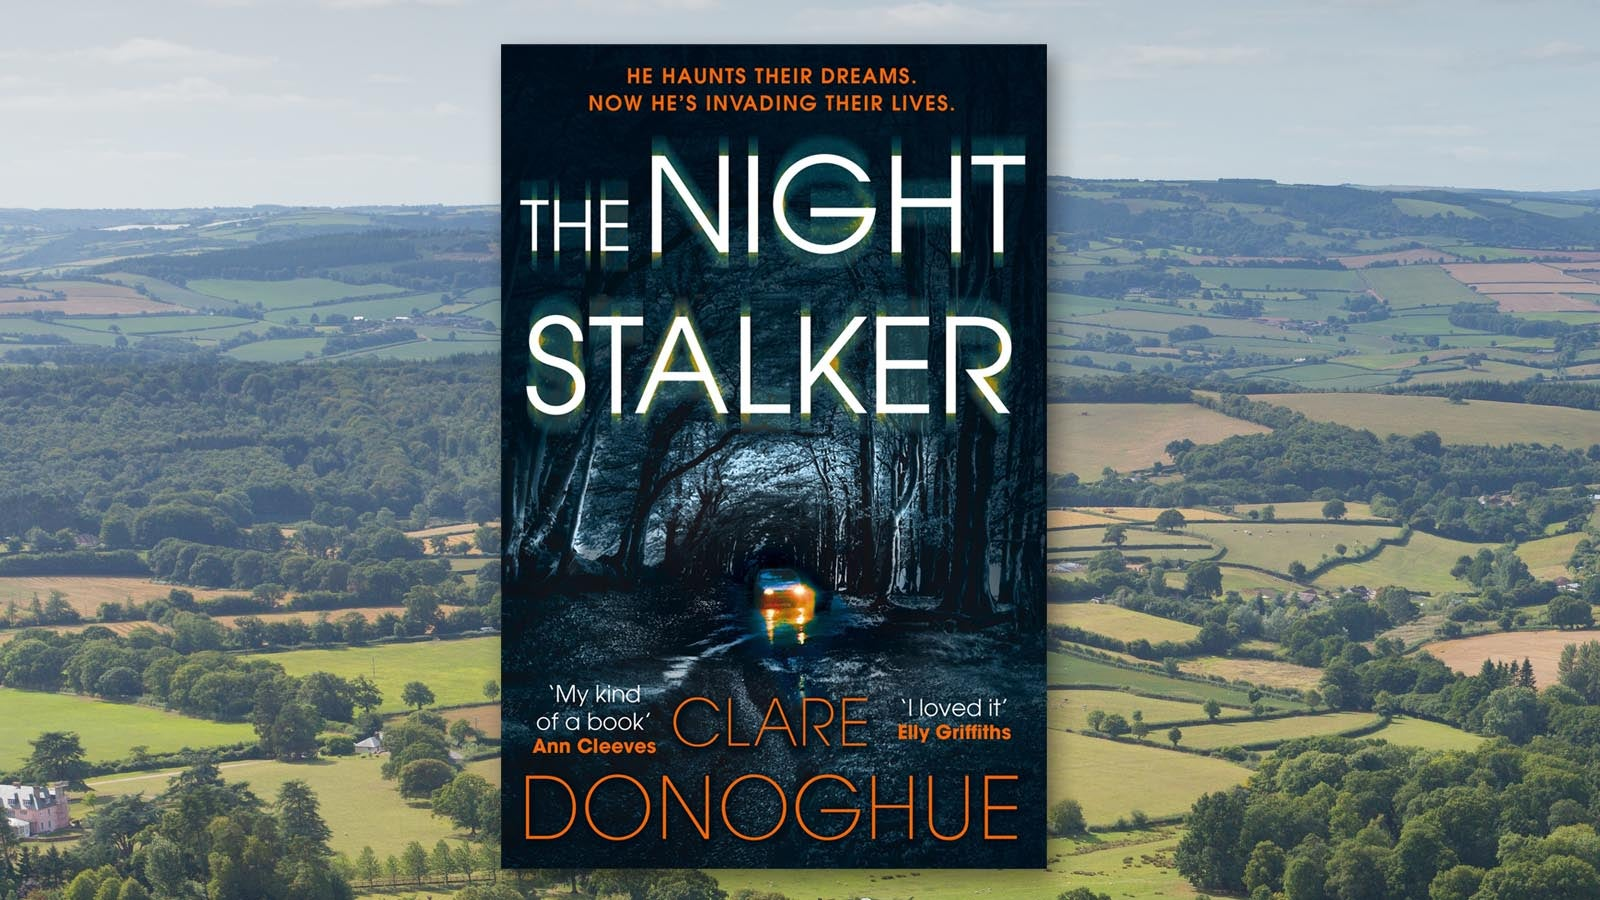 The Night Stalker by Clare Donoghue book cover on a background of fields